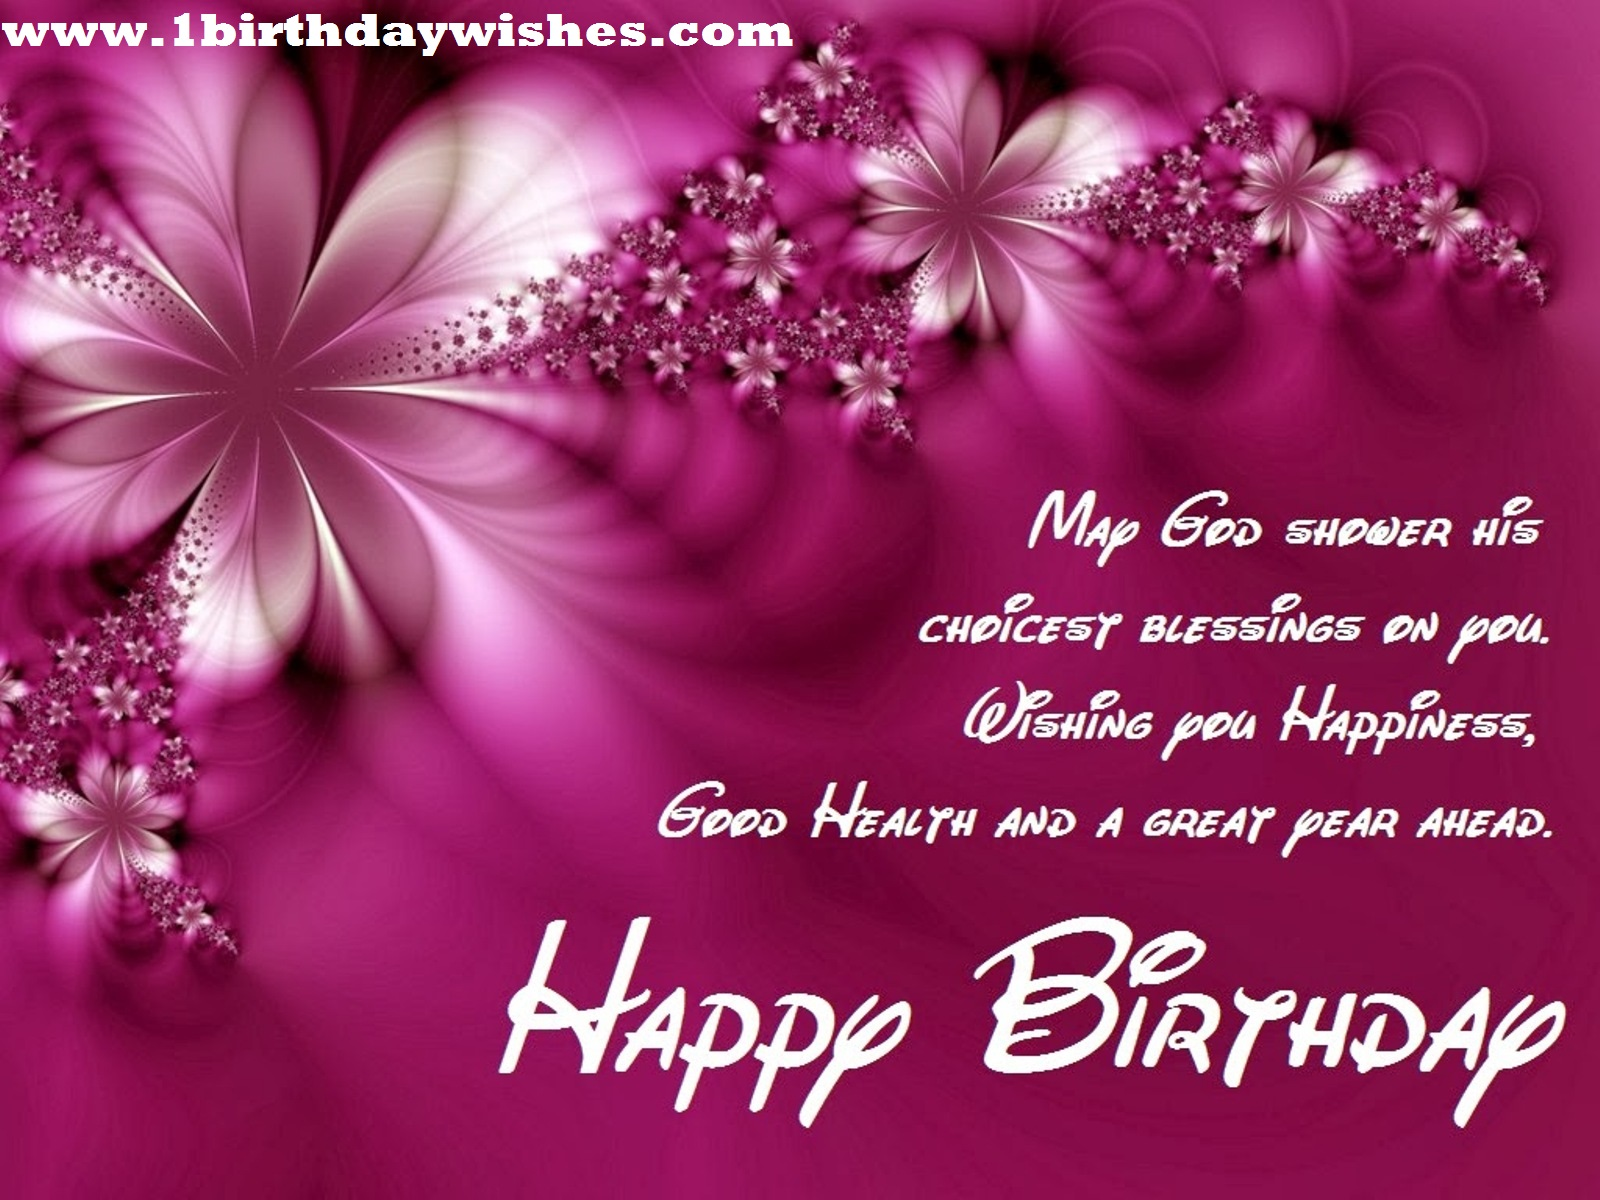 Best happy birthday wishes for all birthday wishes best birthday wishes izmirmasajfo Choice Image